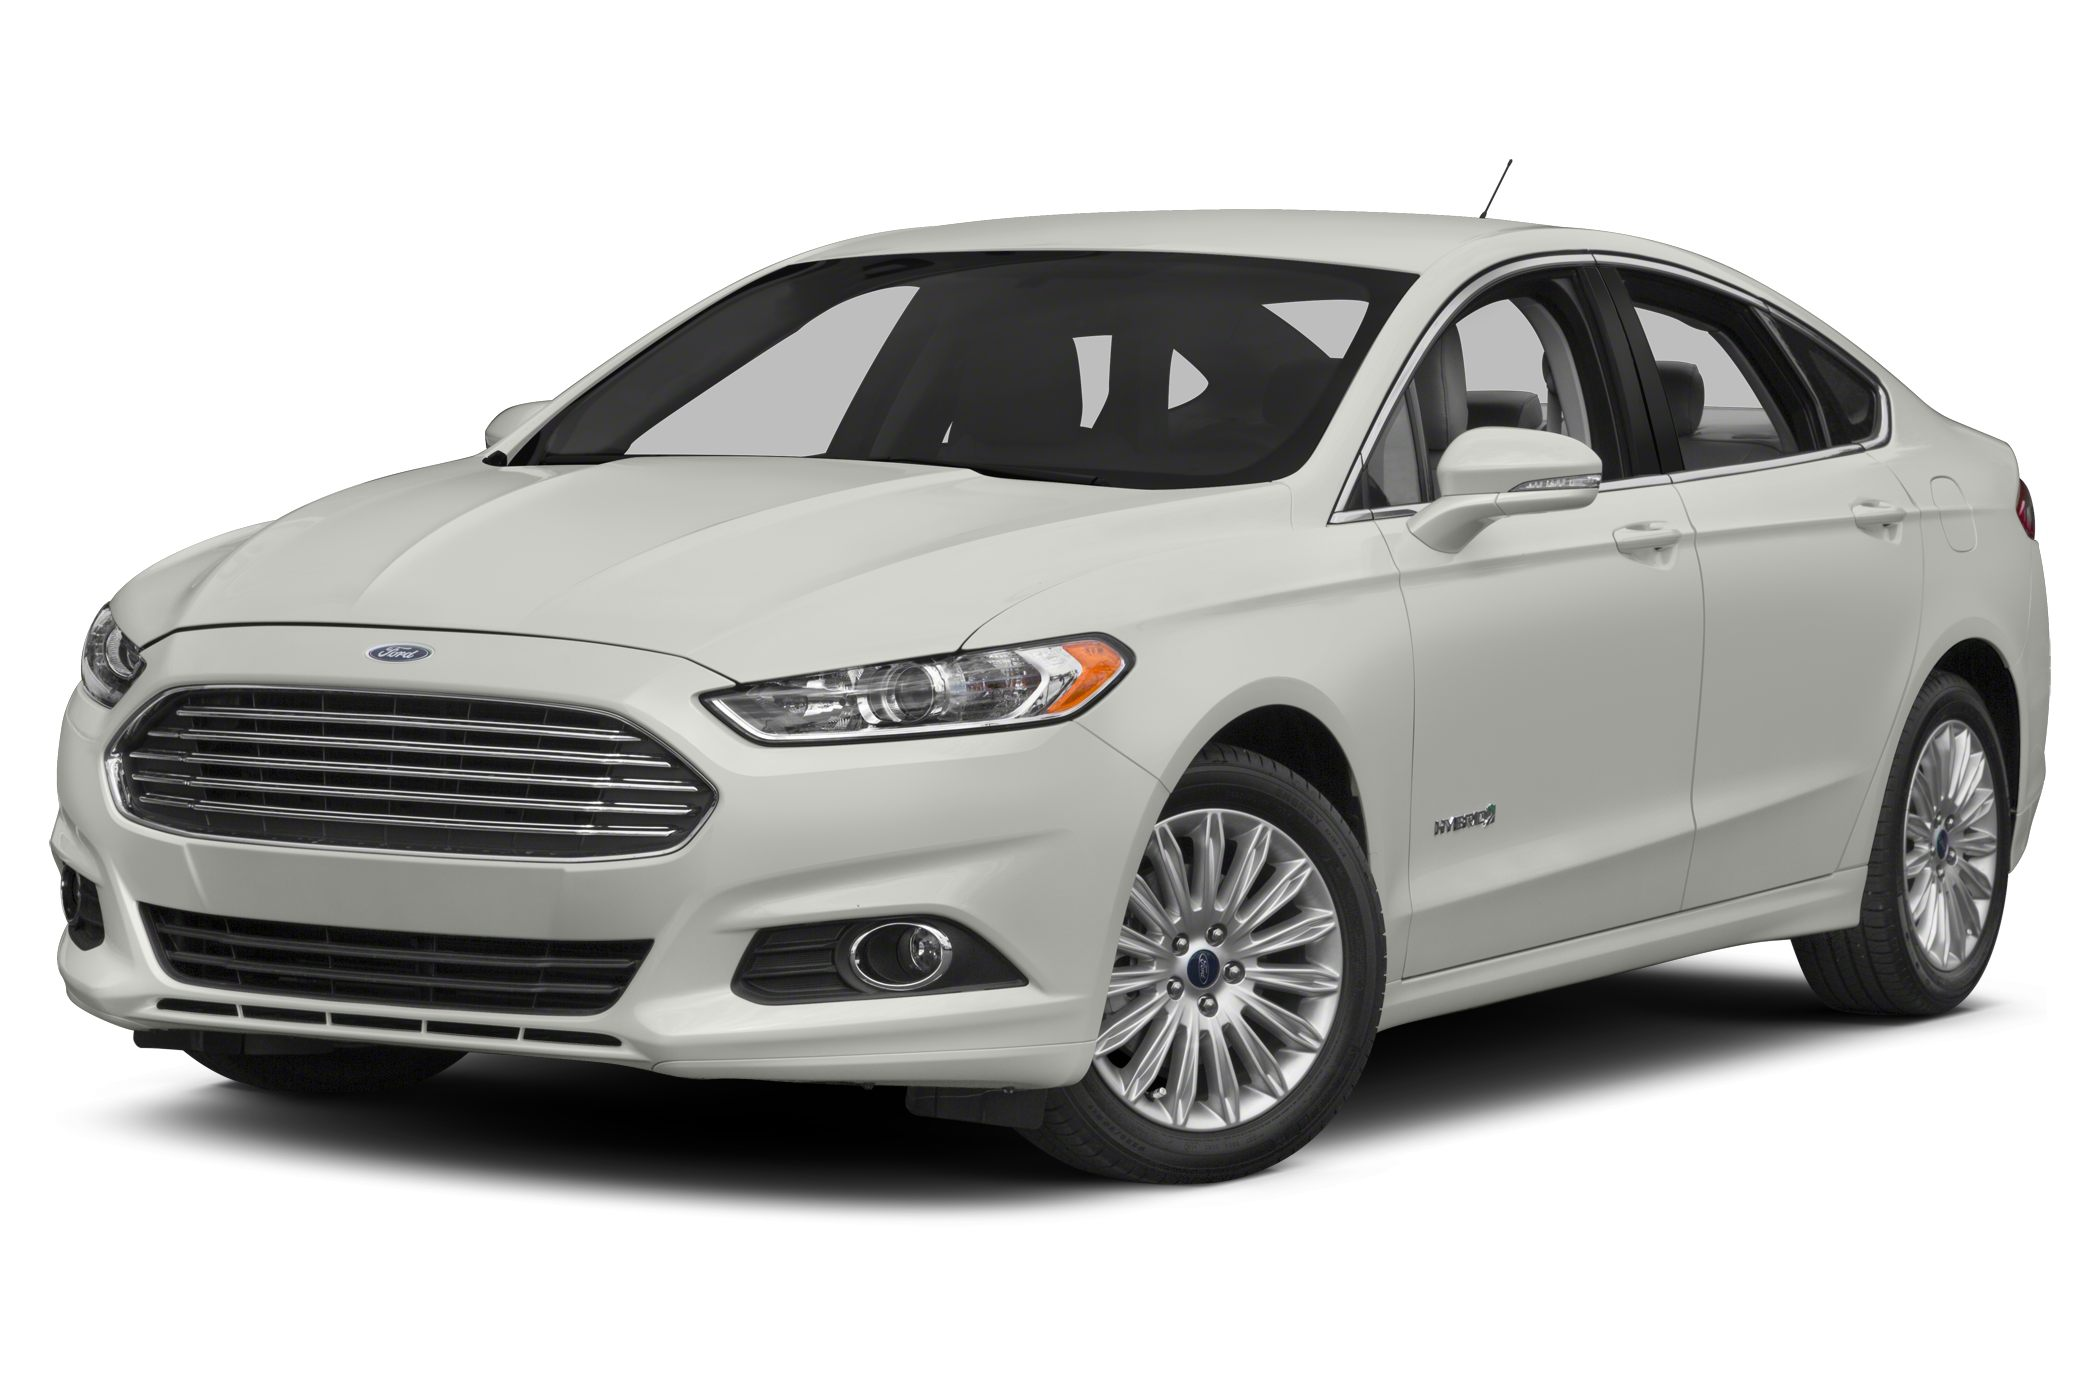 2014 Ford Fusion Hybrid SE Sedan for sale in Malone for $27,525 with 9,250 miles.